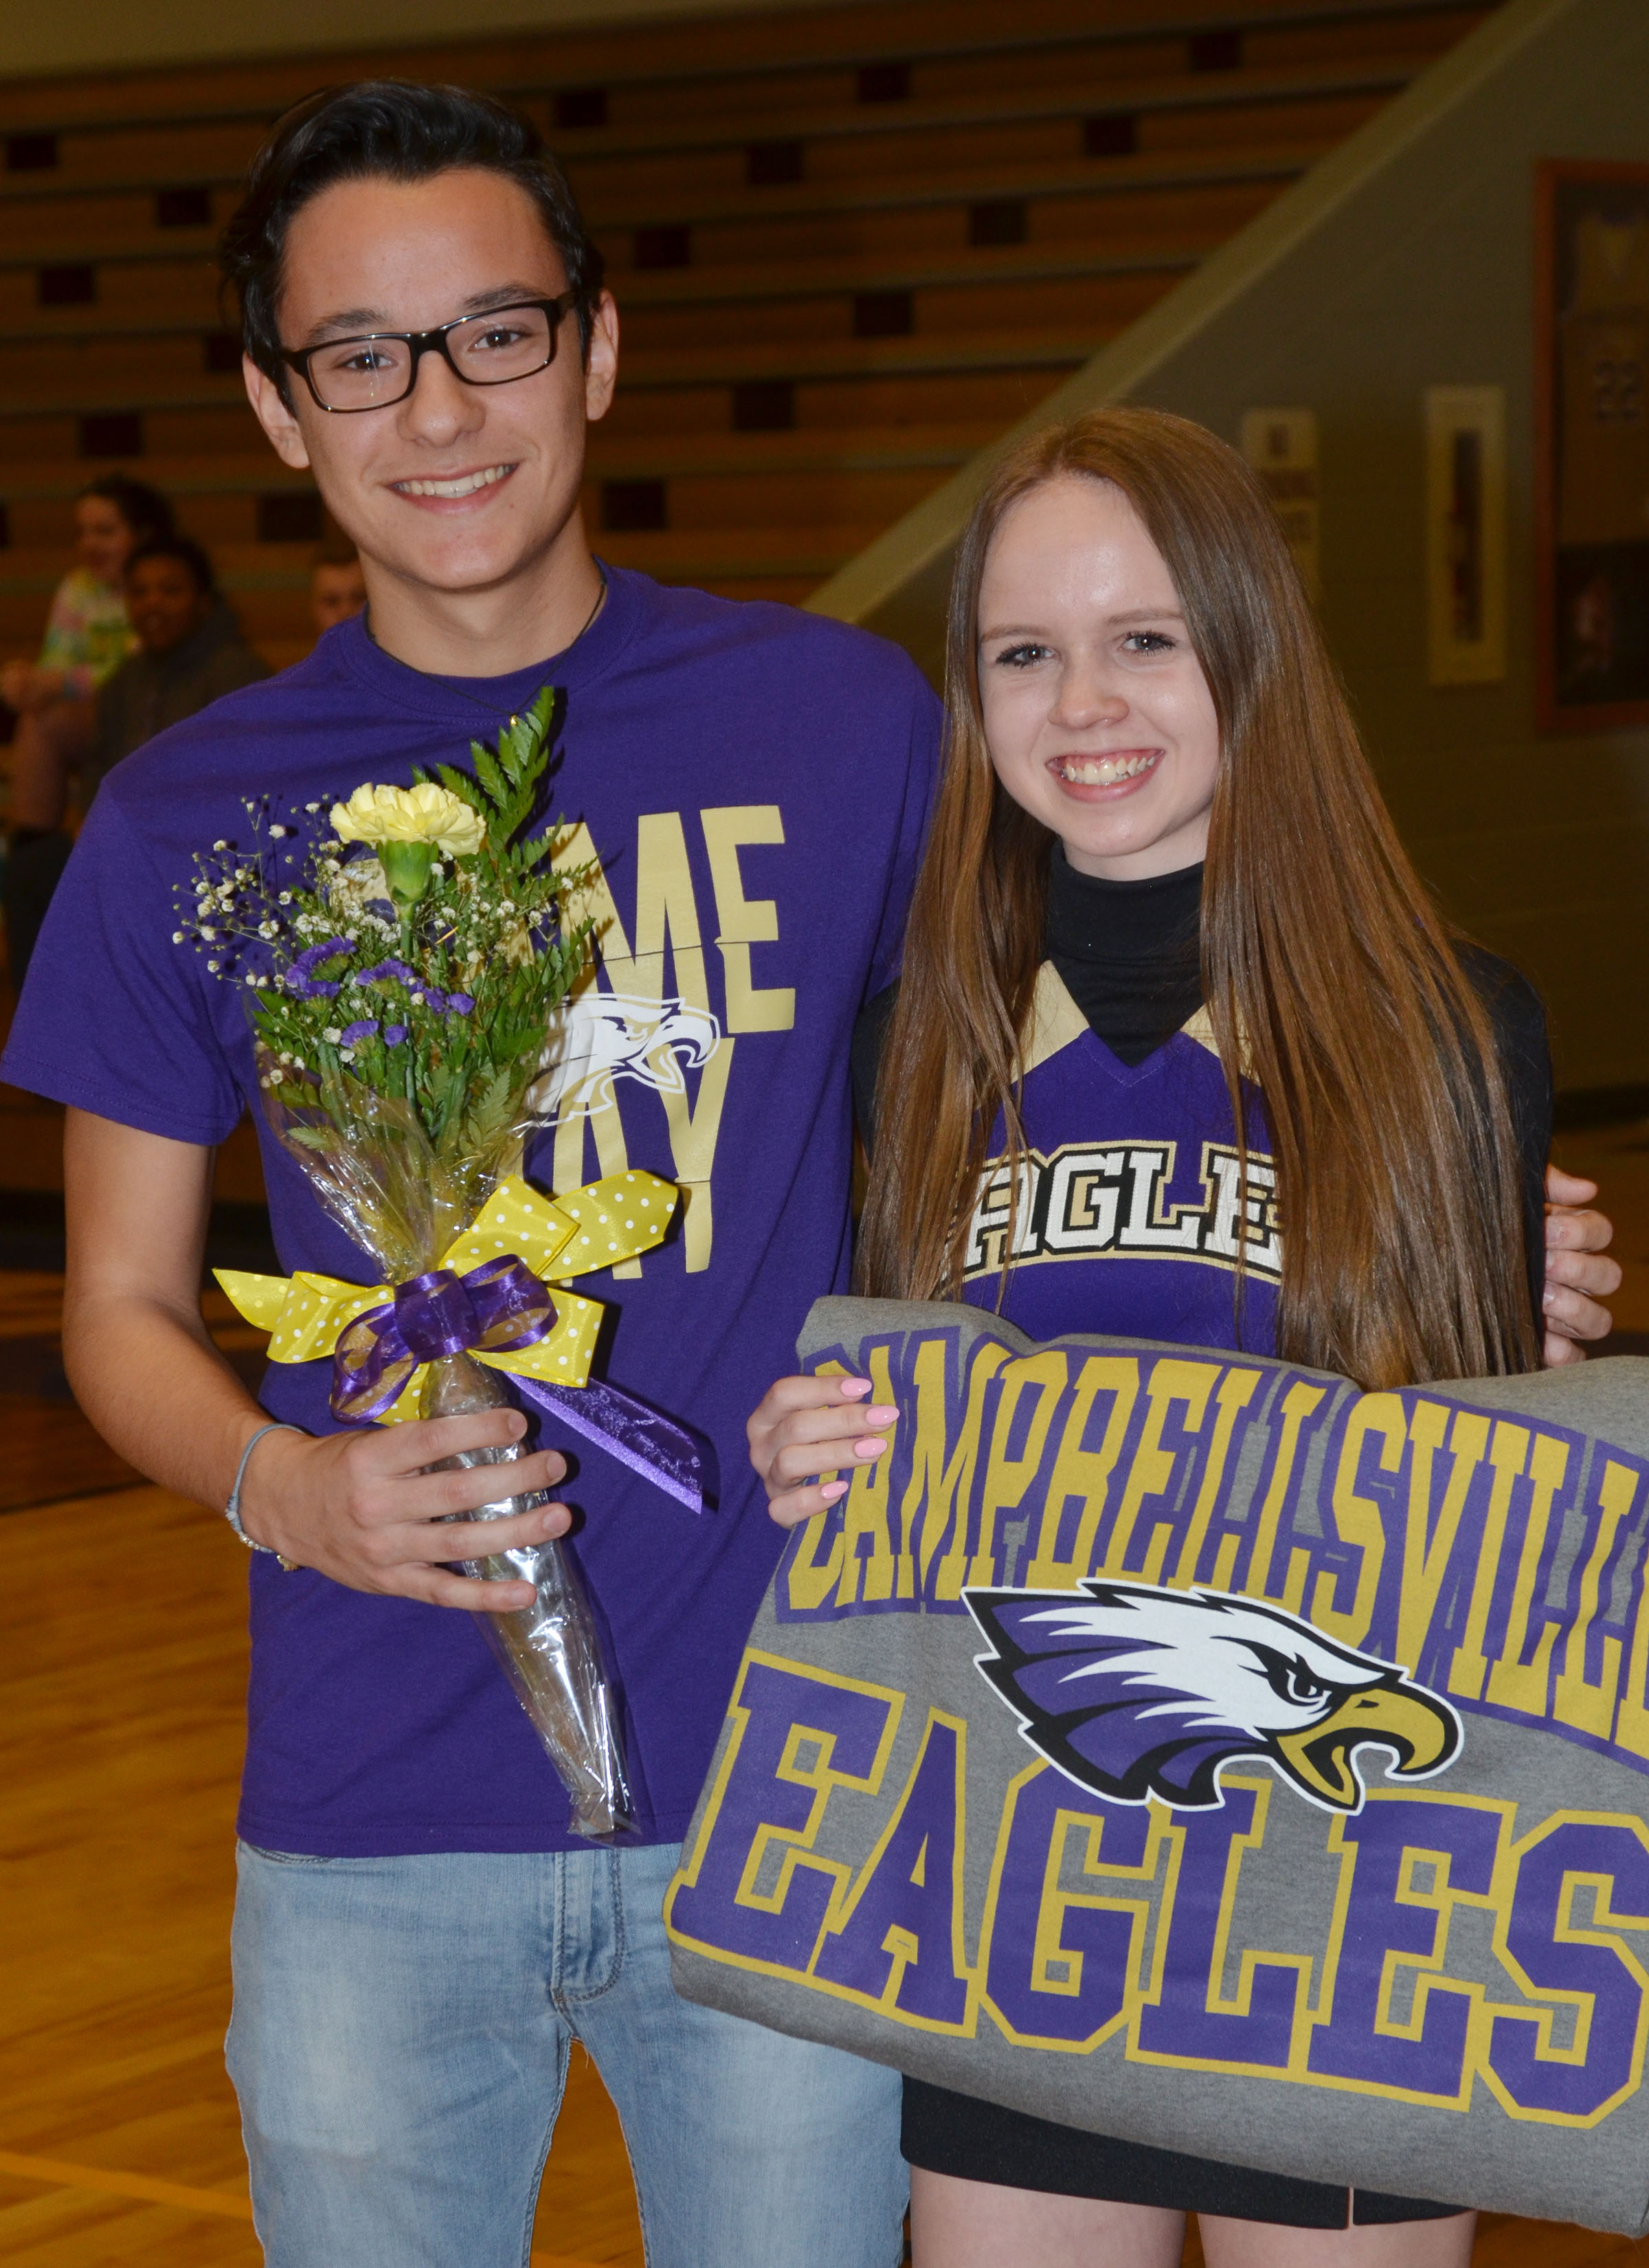 CHS cheerleader Lisa-Marie Richter, a junior and foreign exchange student, is honored. She is pictured with fellow foreign exchange student and CHS junior Matteo Rossi.